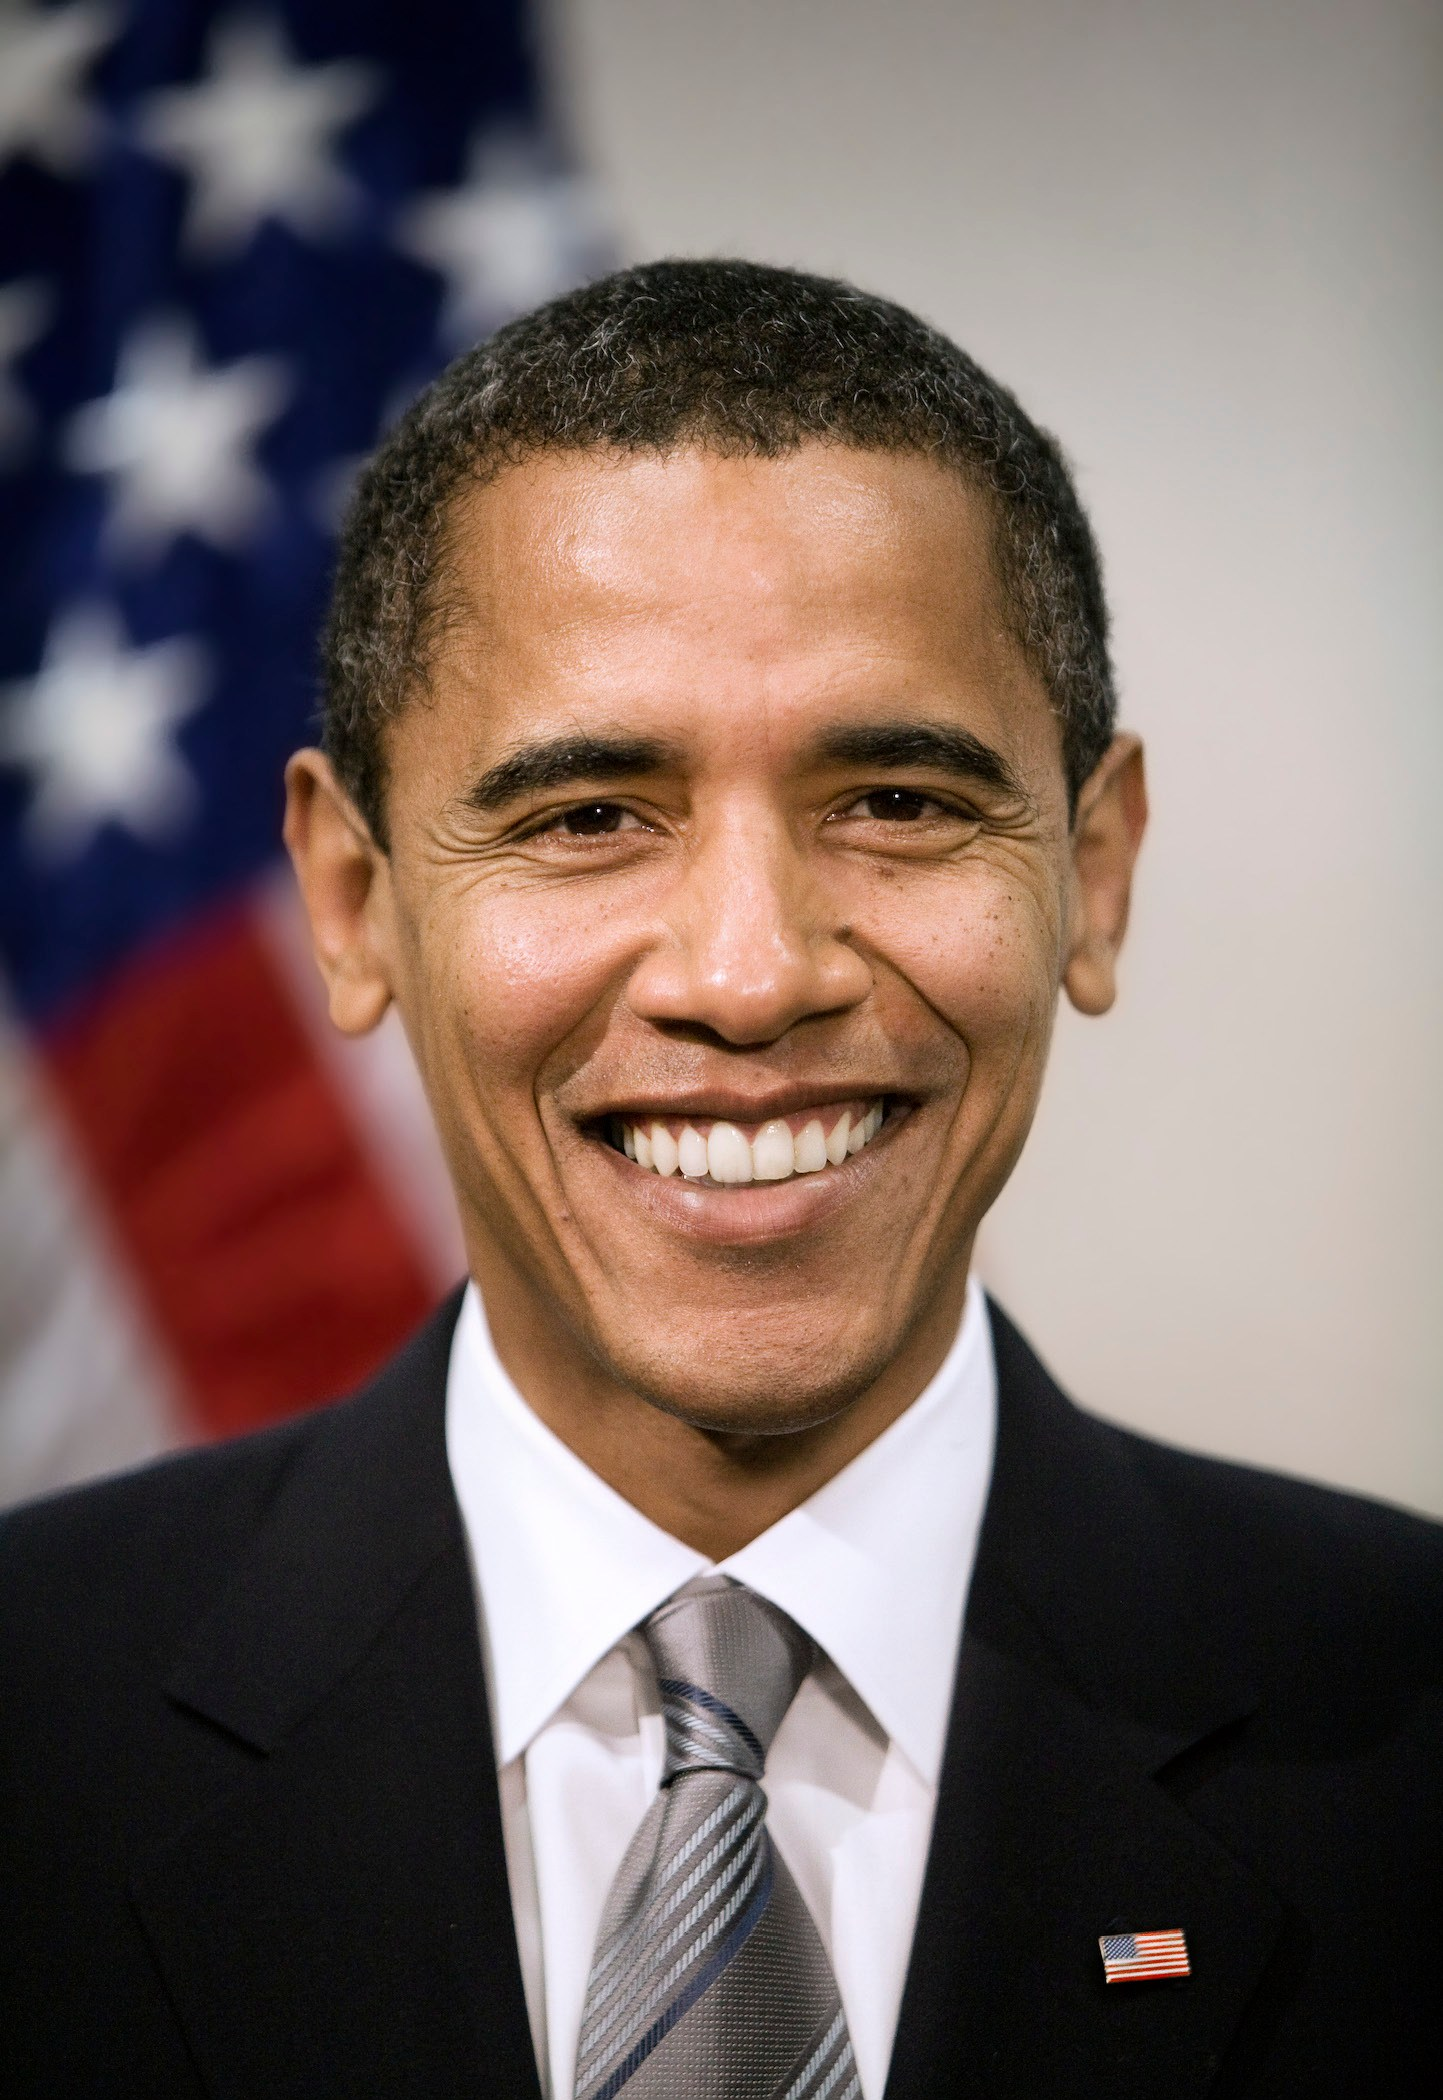 - Poster-sized_portrait_of_Barack_Obama_OrigRes